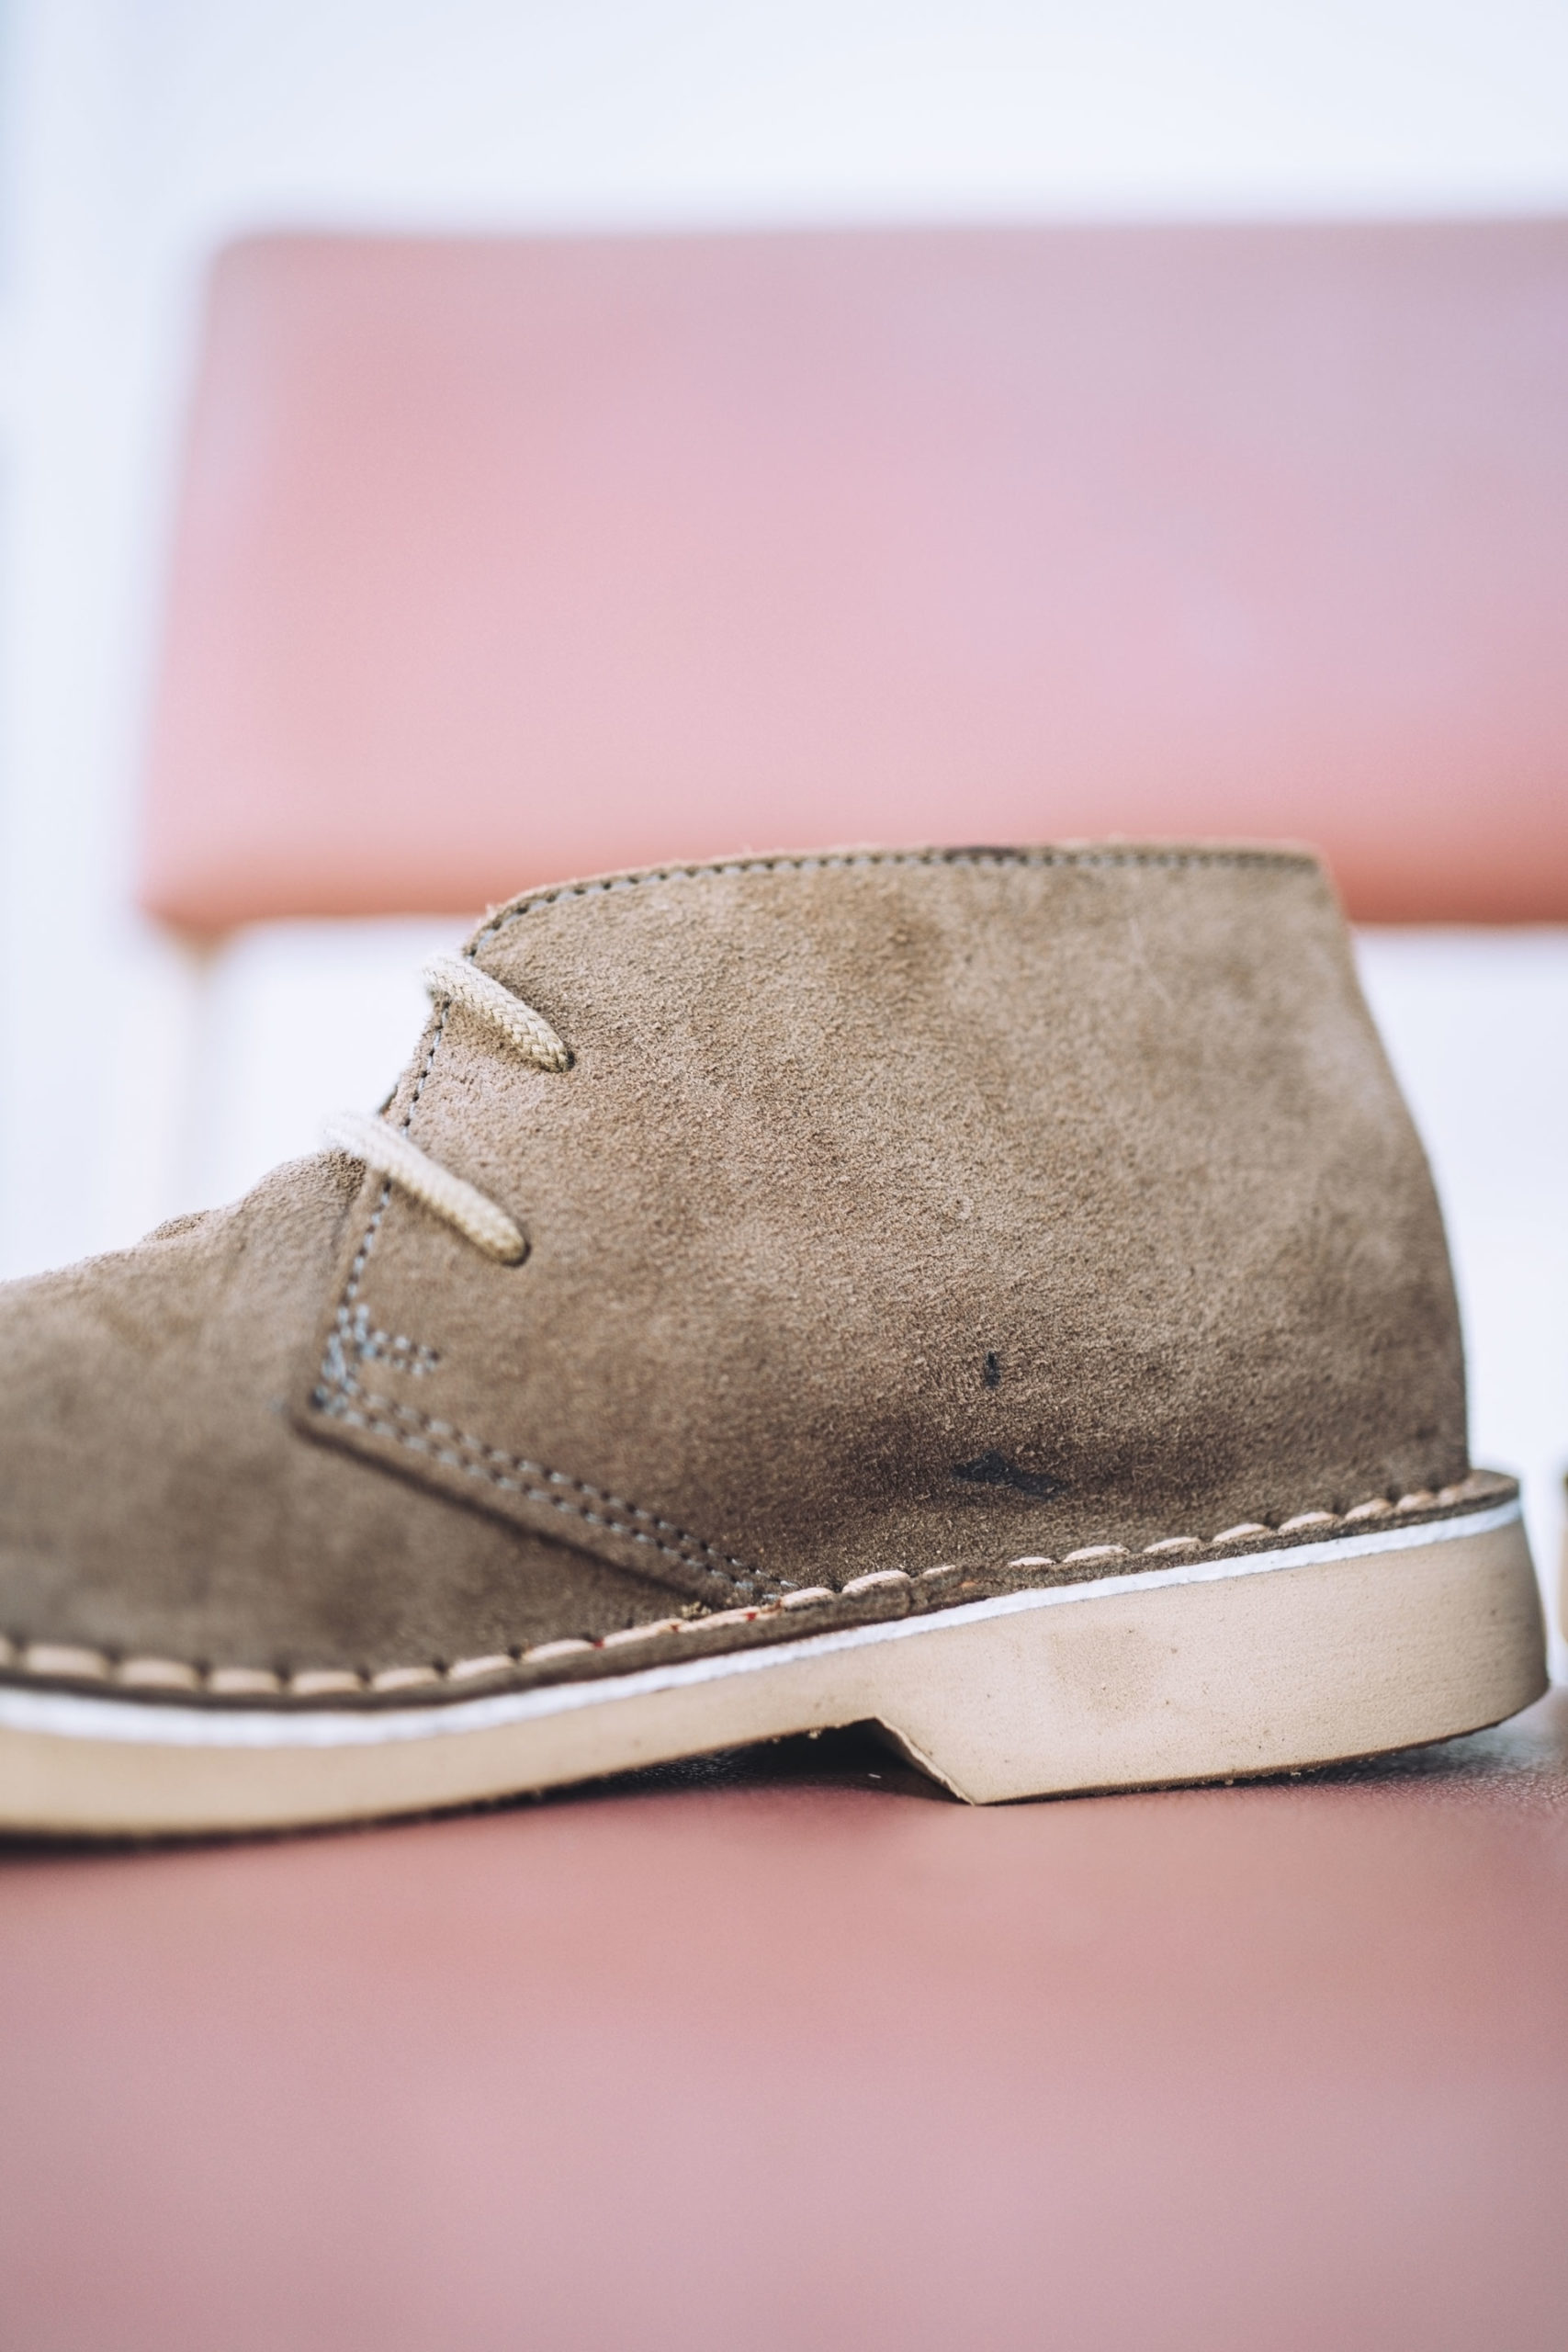 Leather boots with blemishes